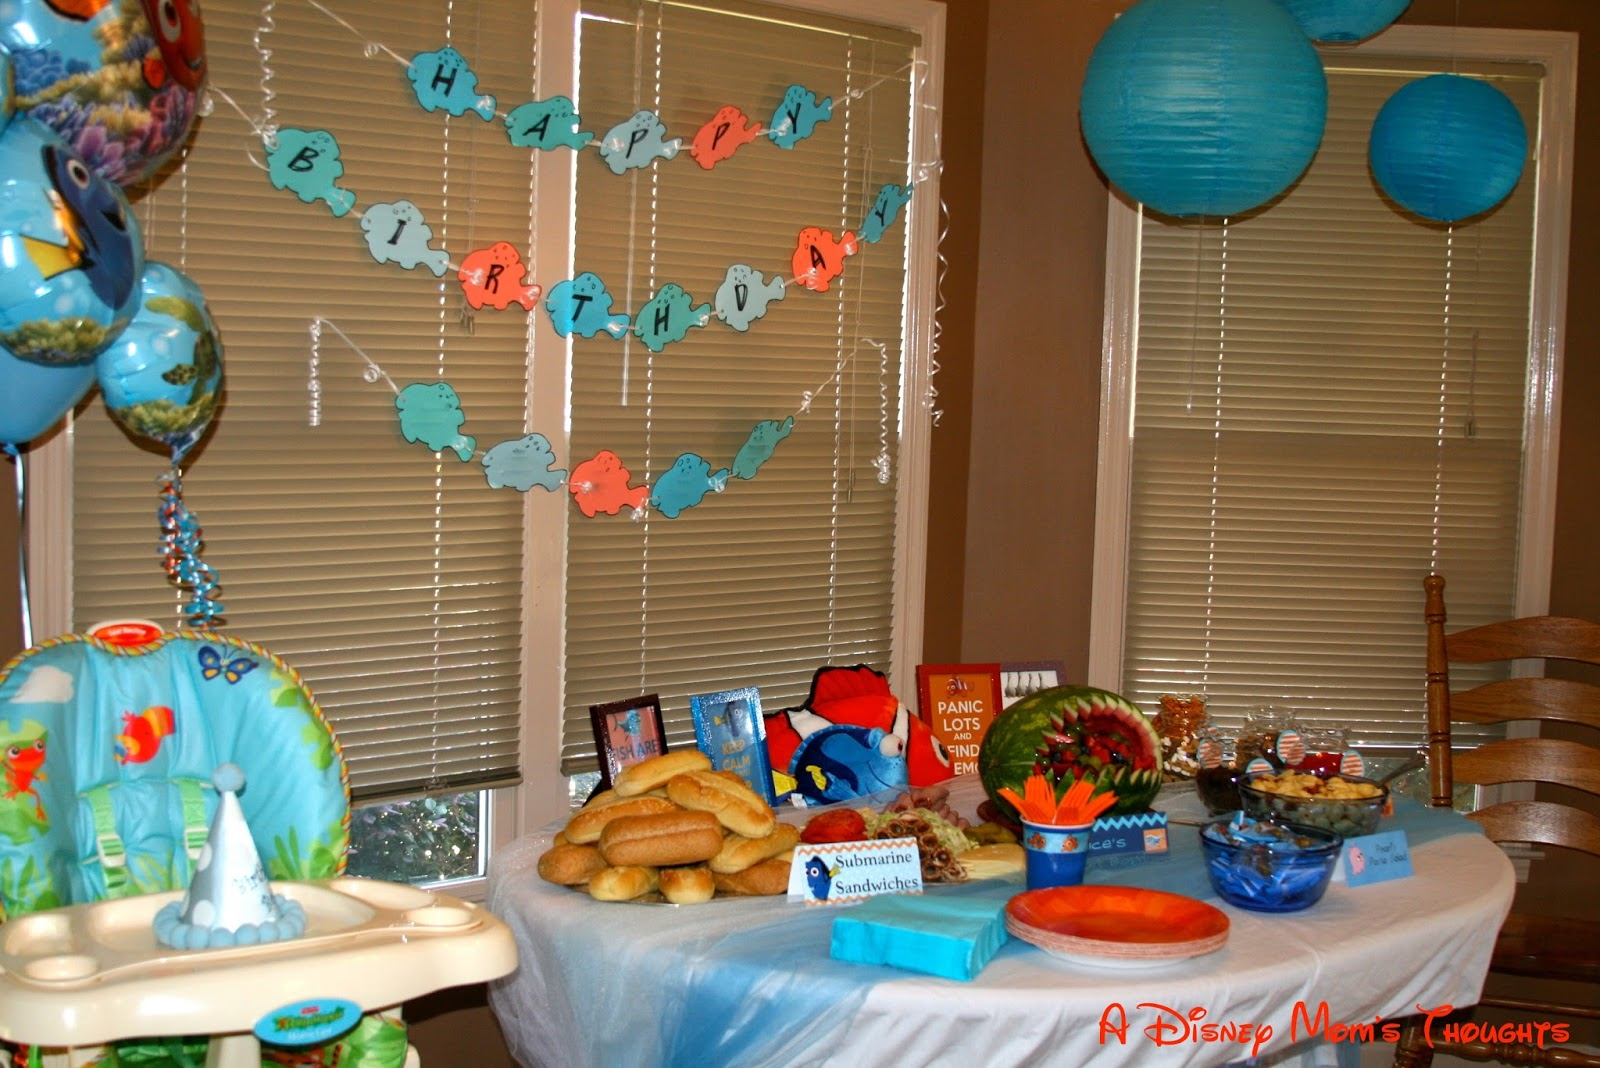 Finding nemo first birthday decorations a disney mom 39 s thoughts for 1st birthday decoration pictures